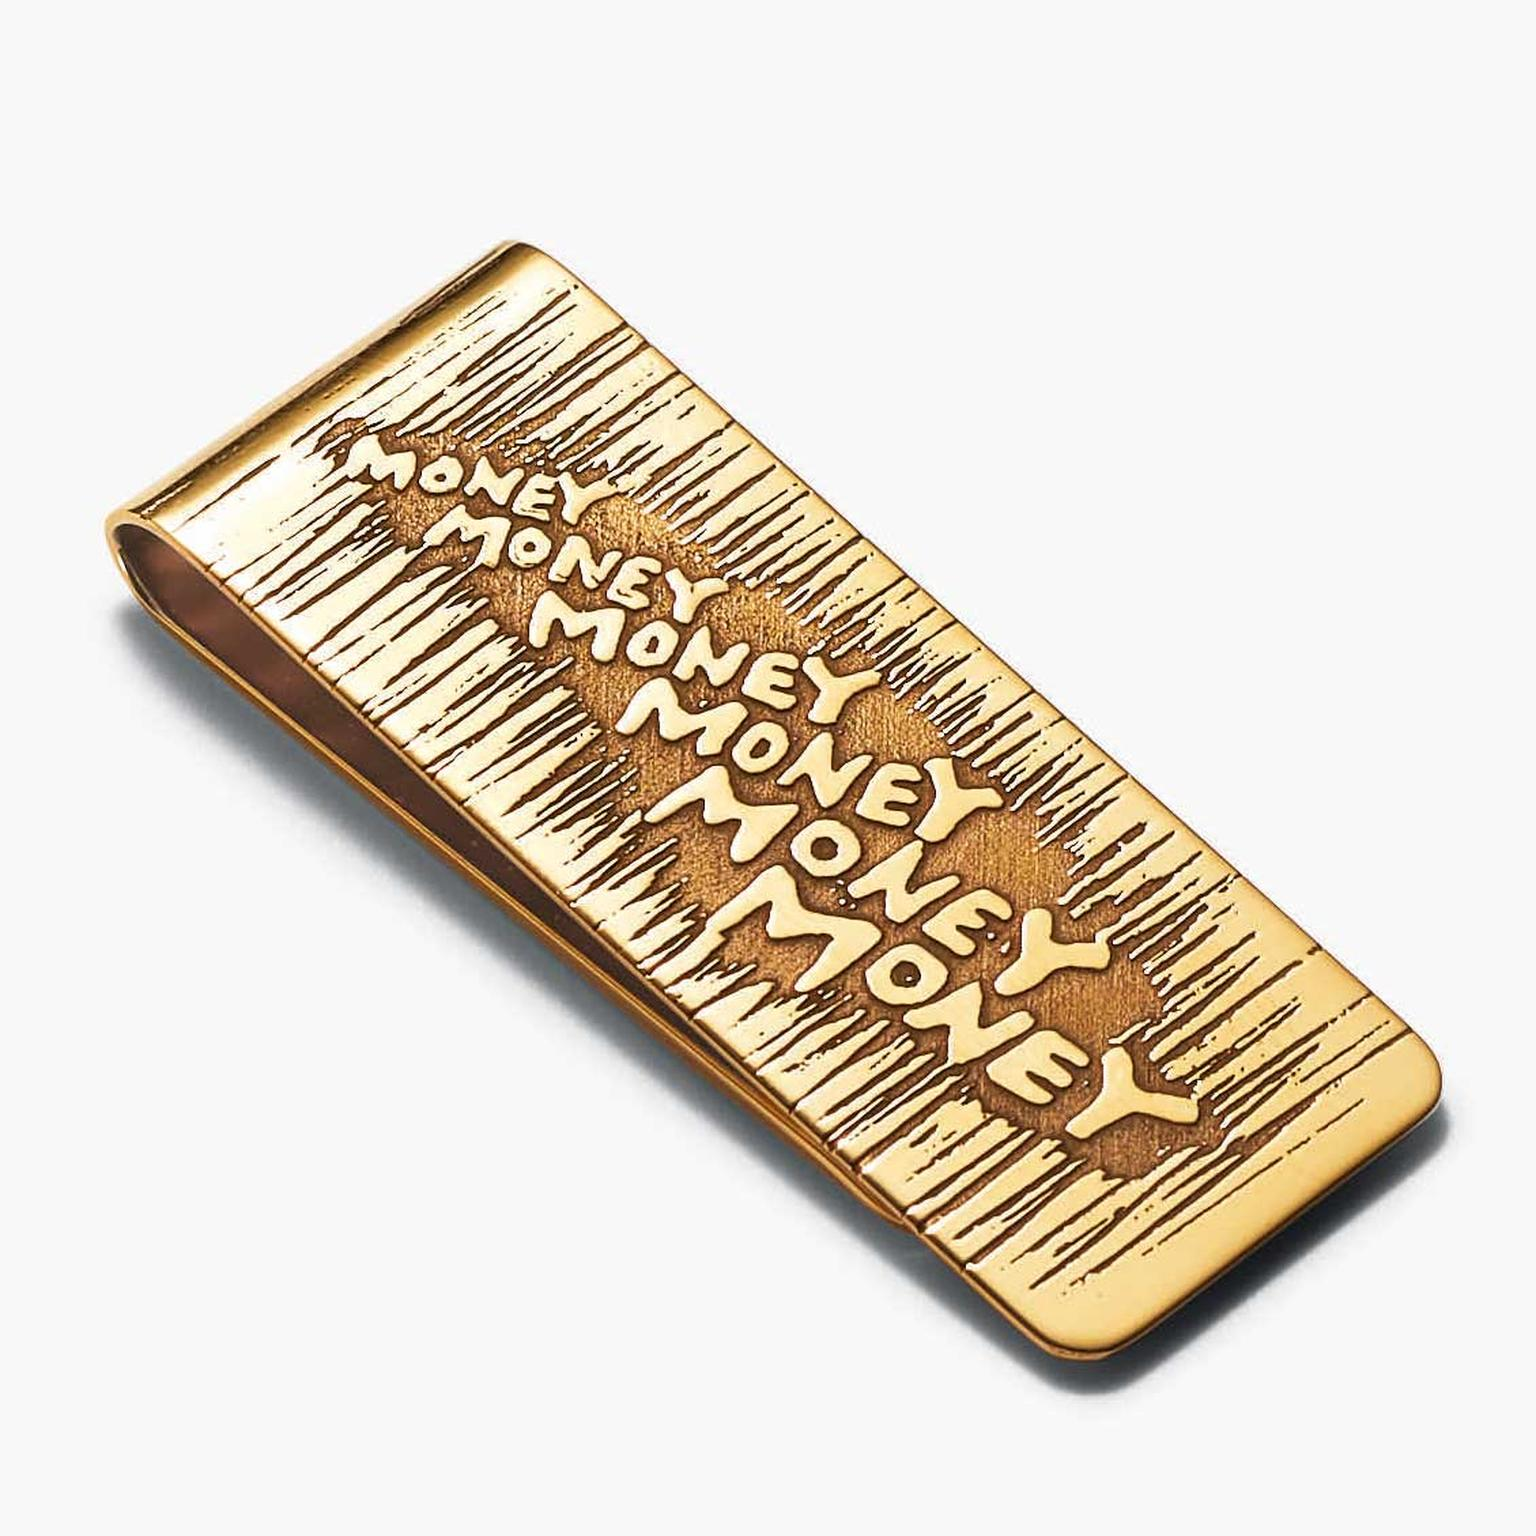 Tiffany Out of Retirement gold money clip, based on a design from 1955